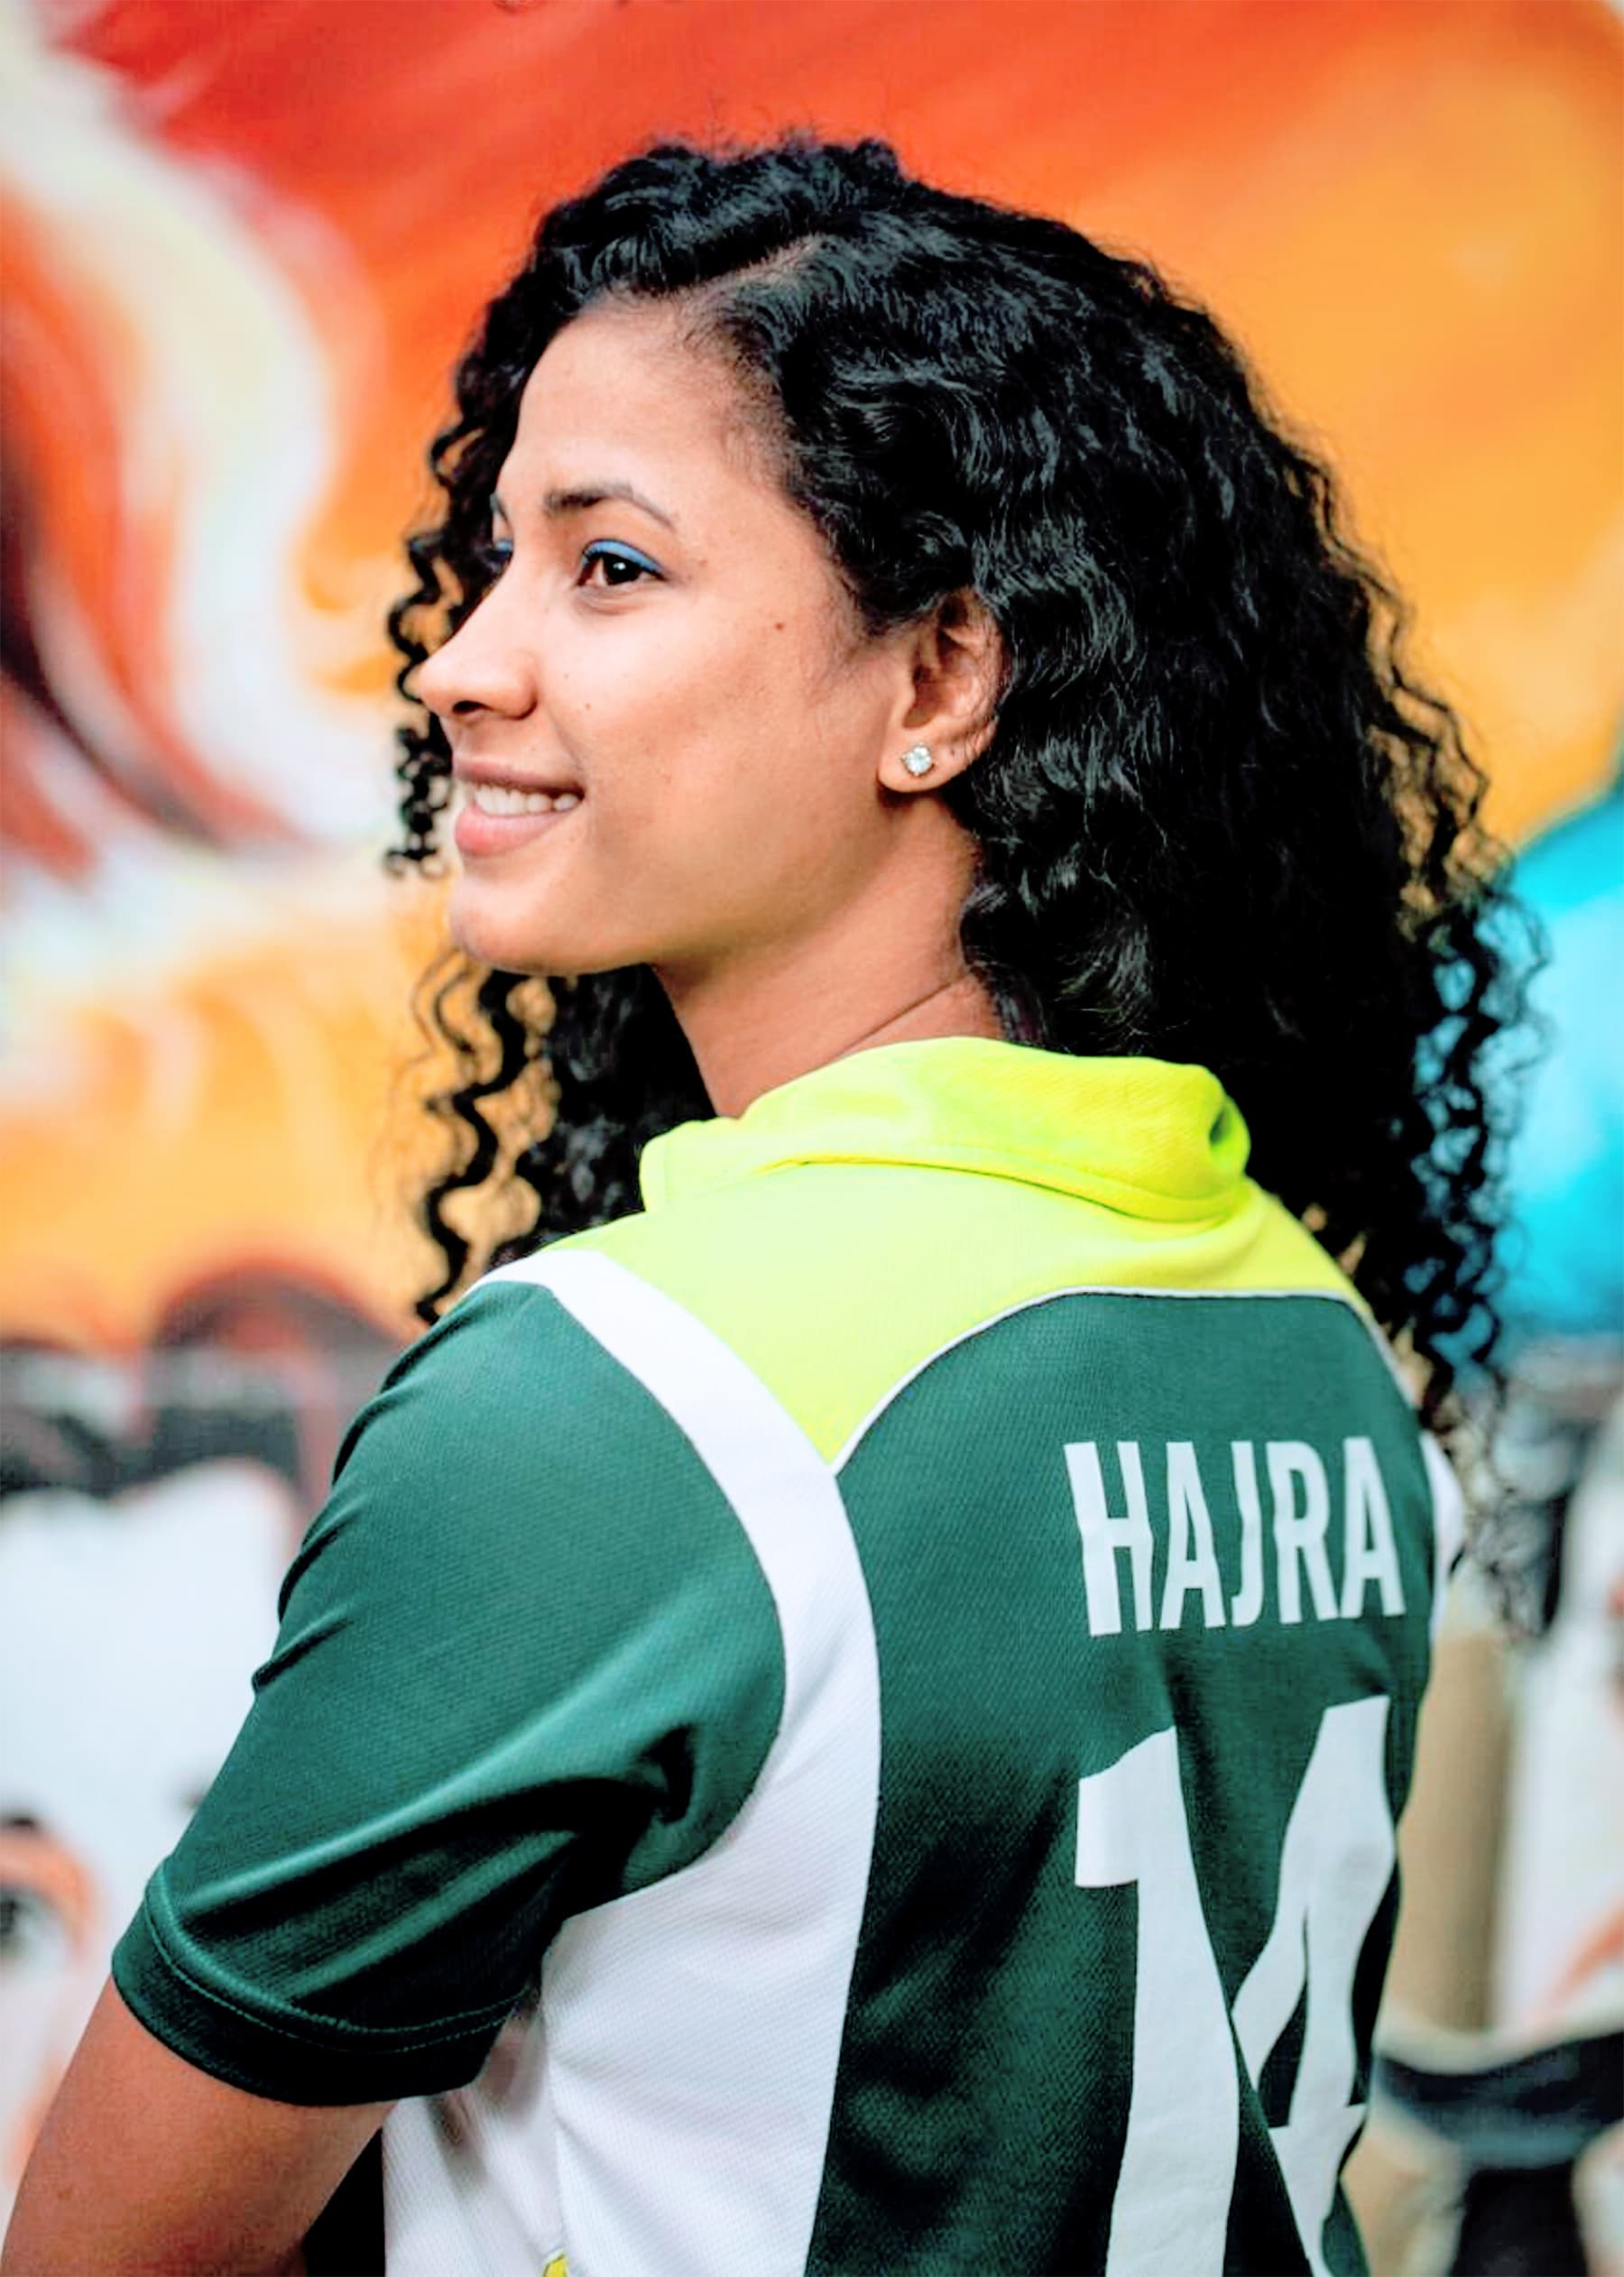 Pakistan women's football team star Hajra Khan. — British Asian Trust